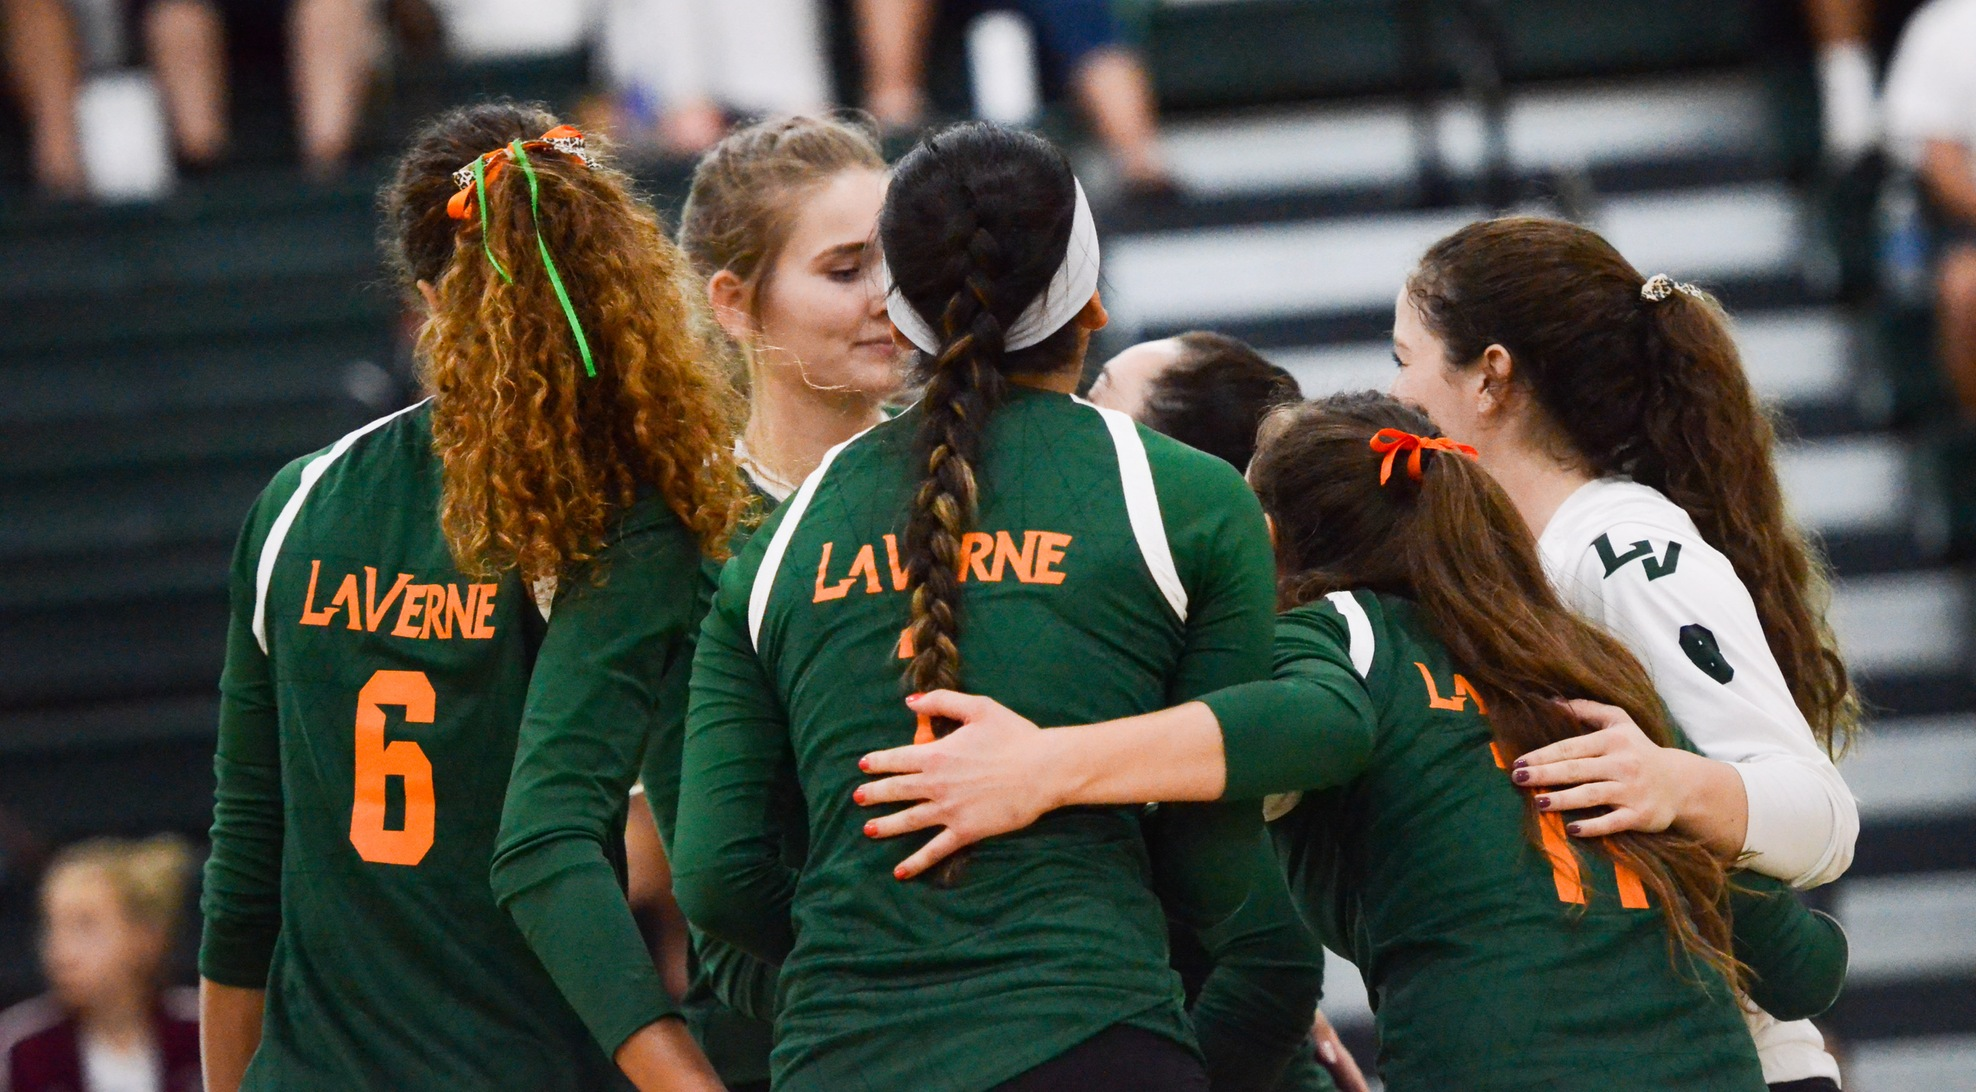 No. 14 Volleyball falls to No. 7 Claremont-Mudd-Scripps on the road